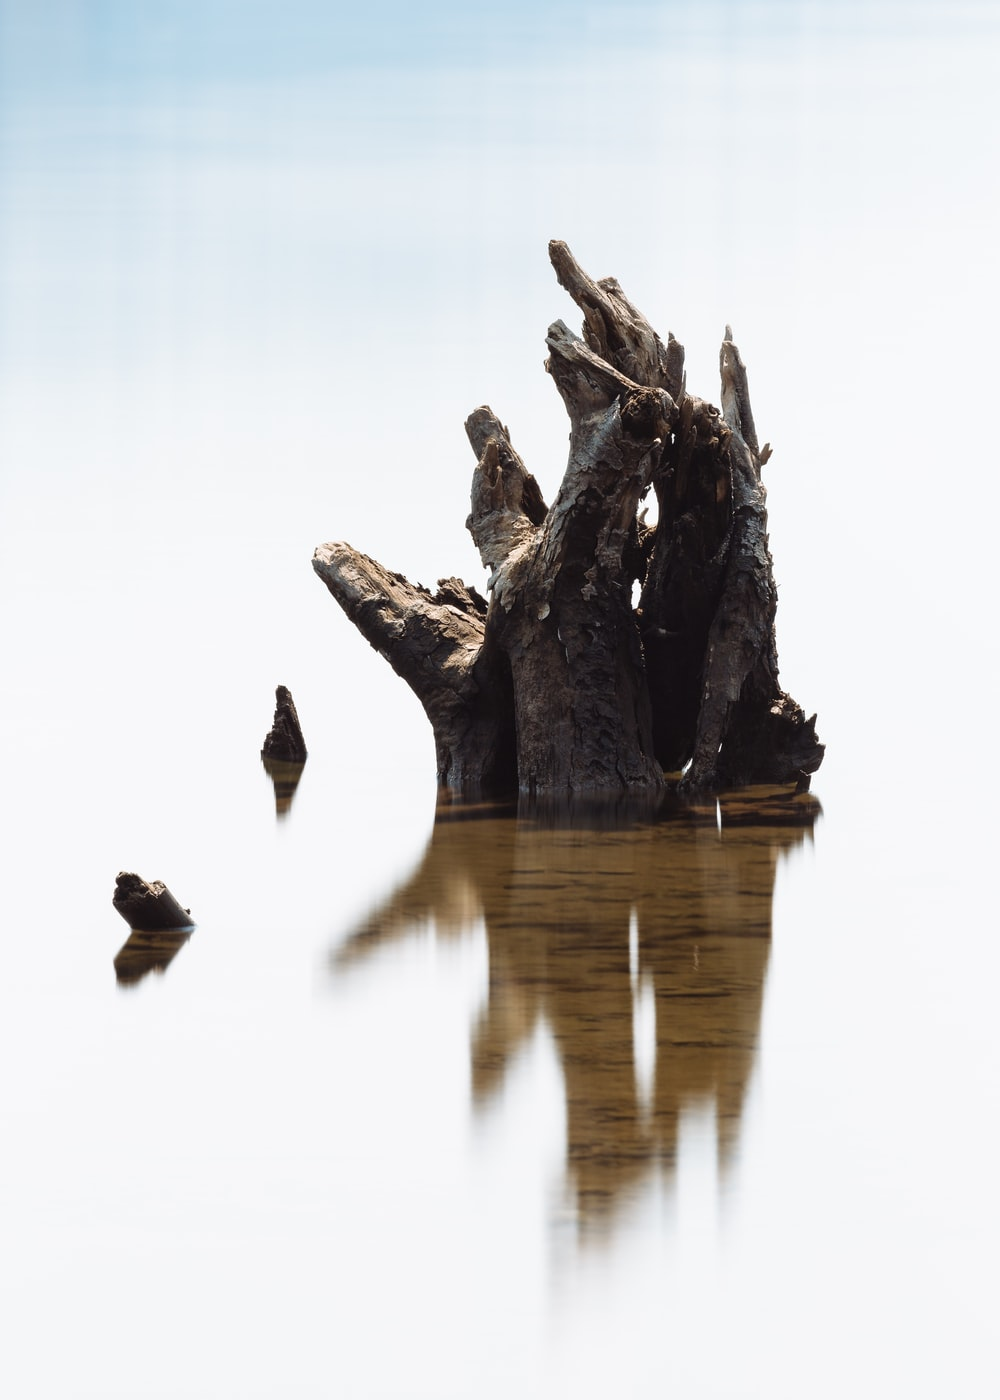 brown wood log on bodt water